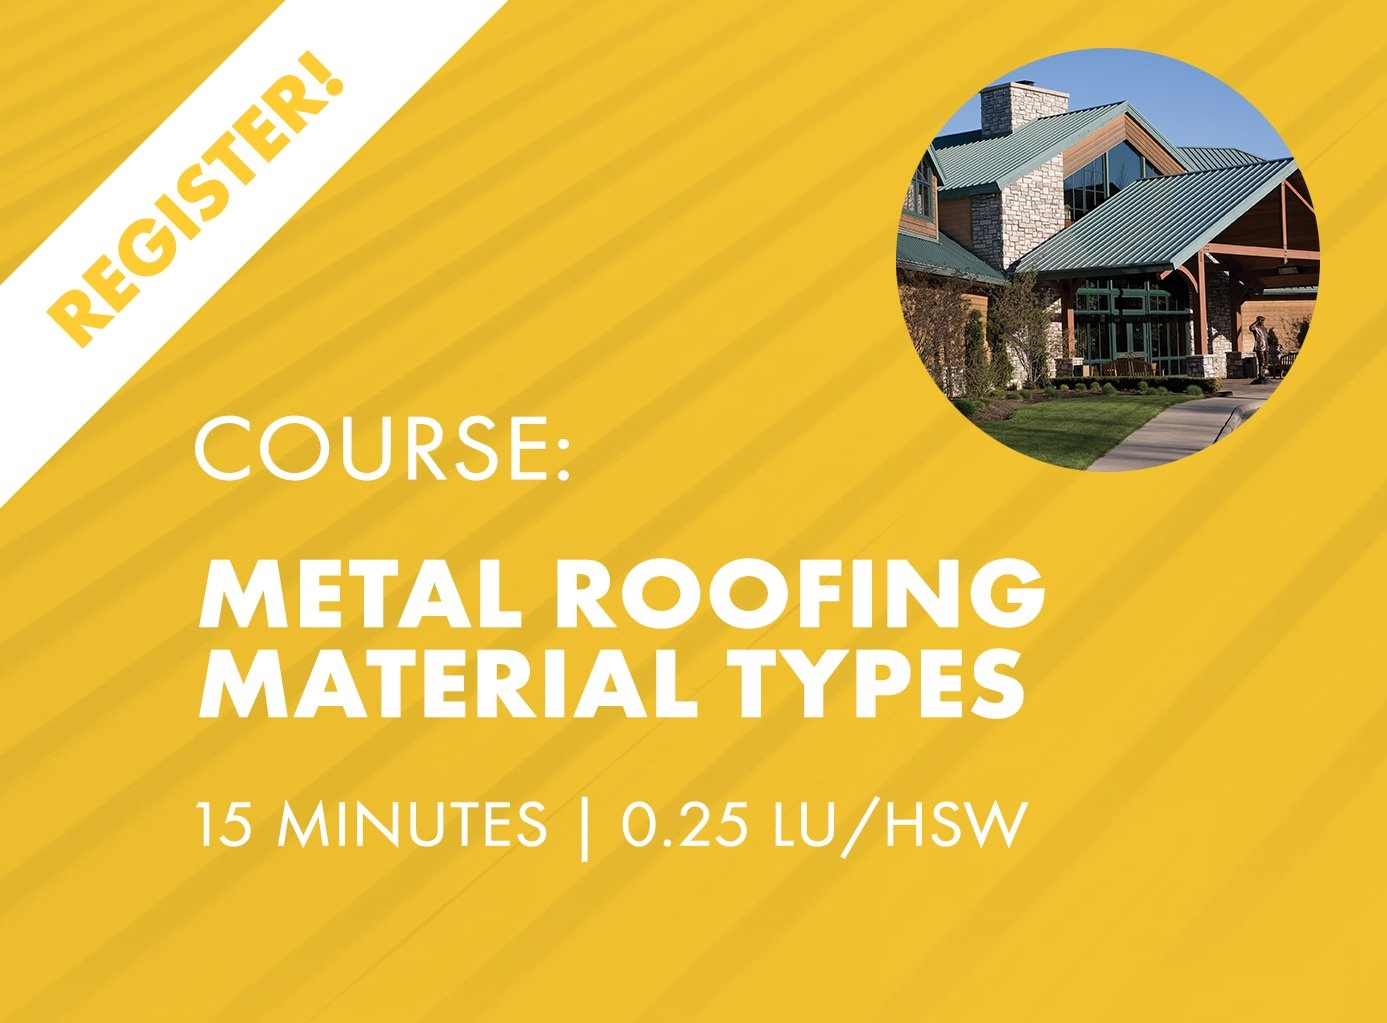 AIA Nano Course - Metal Roofing Material Types